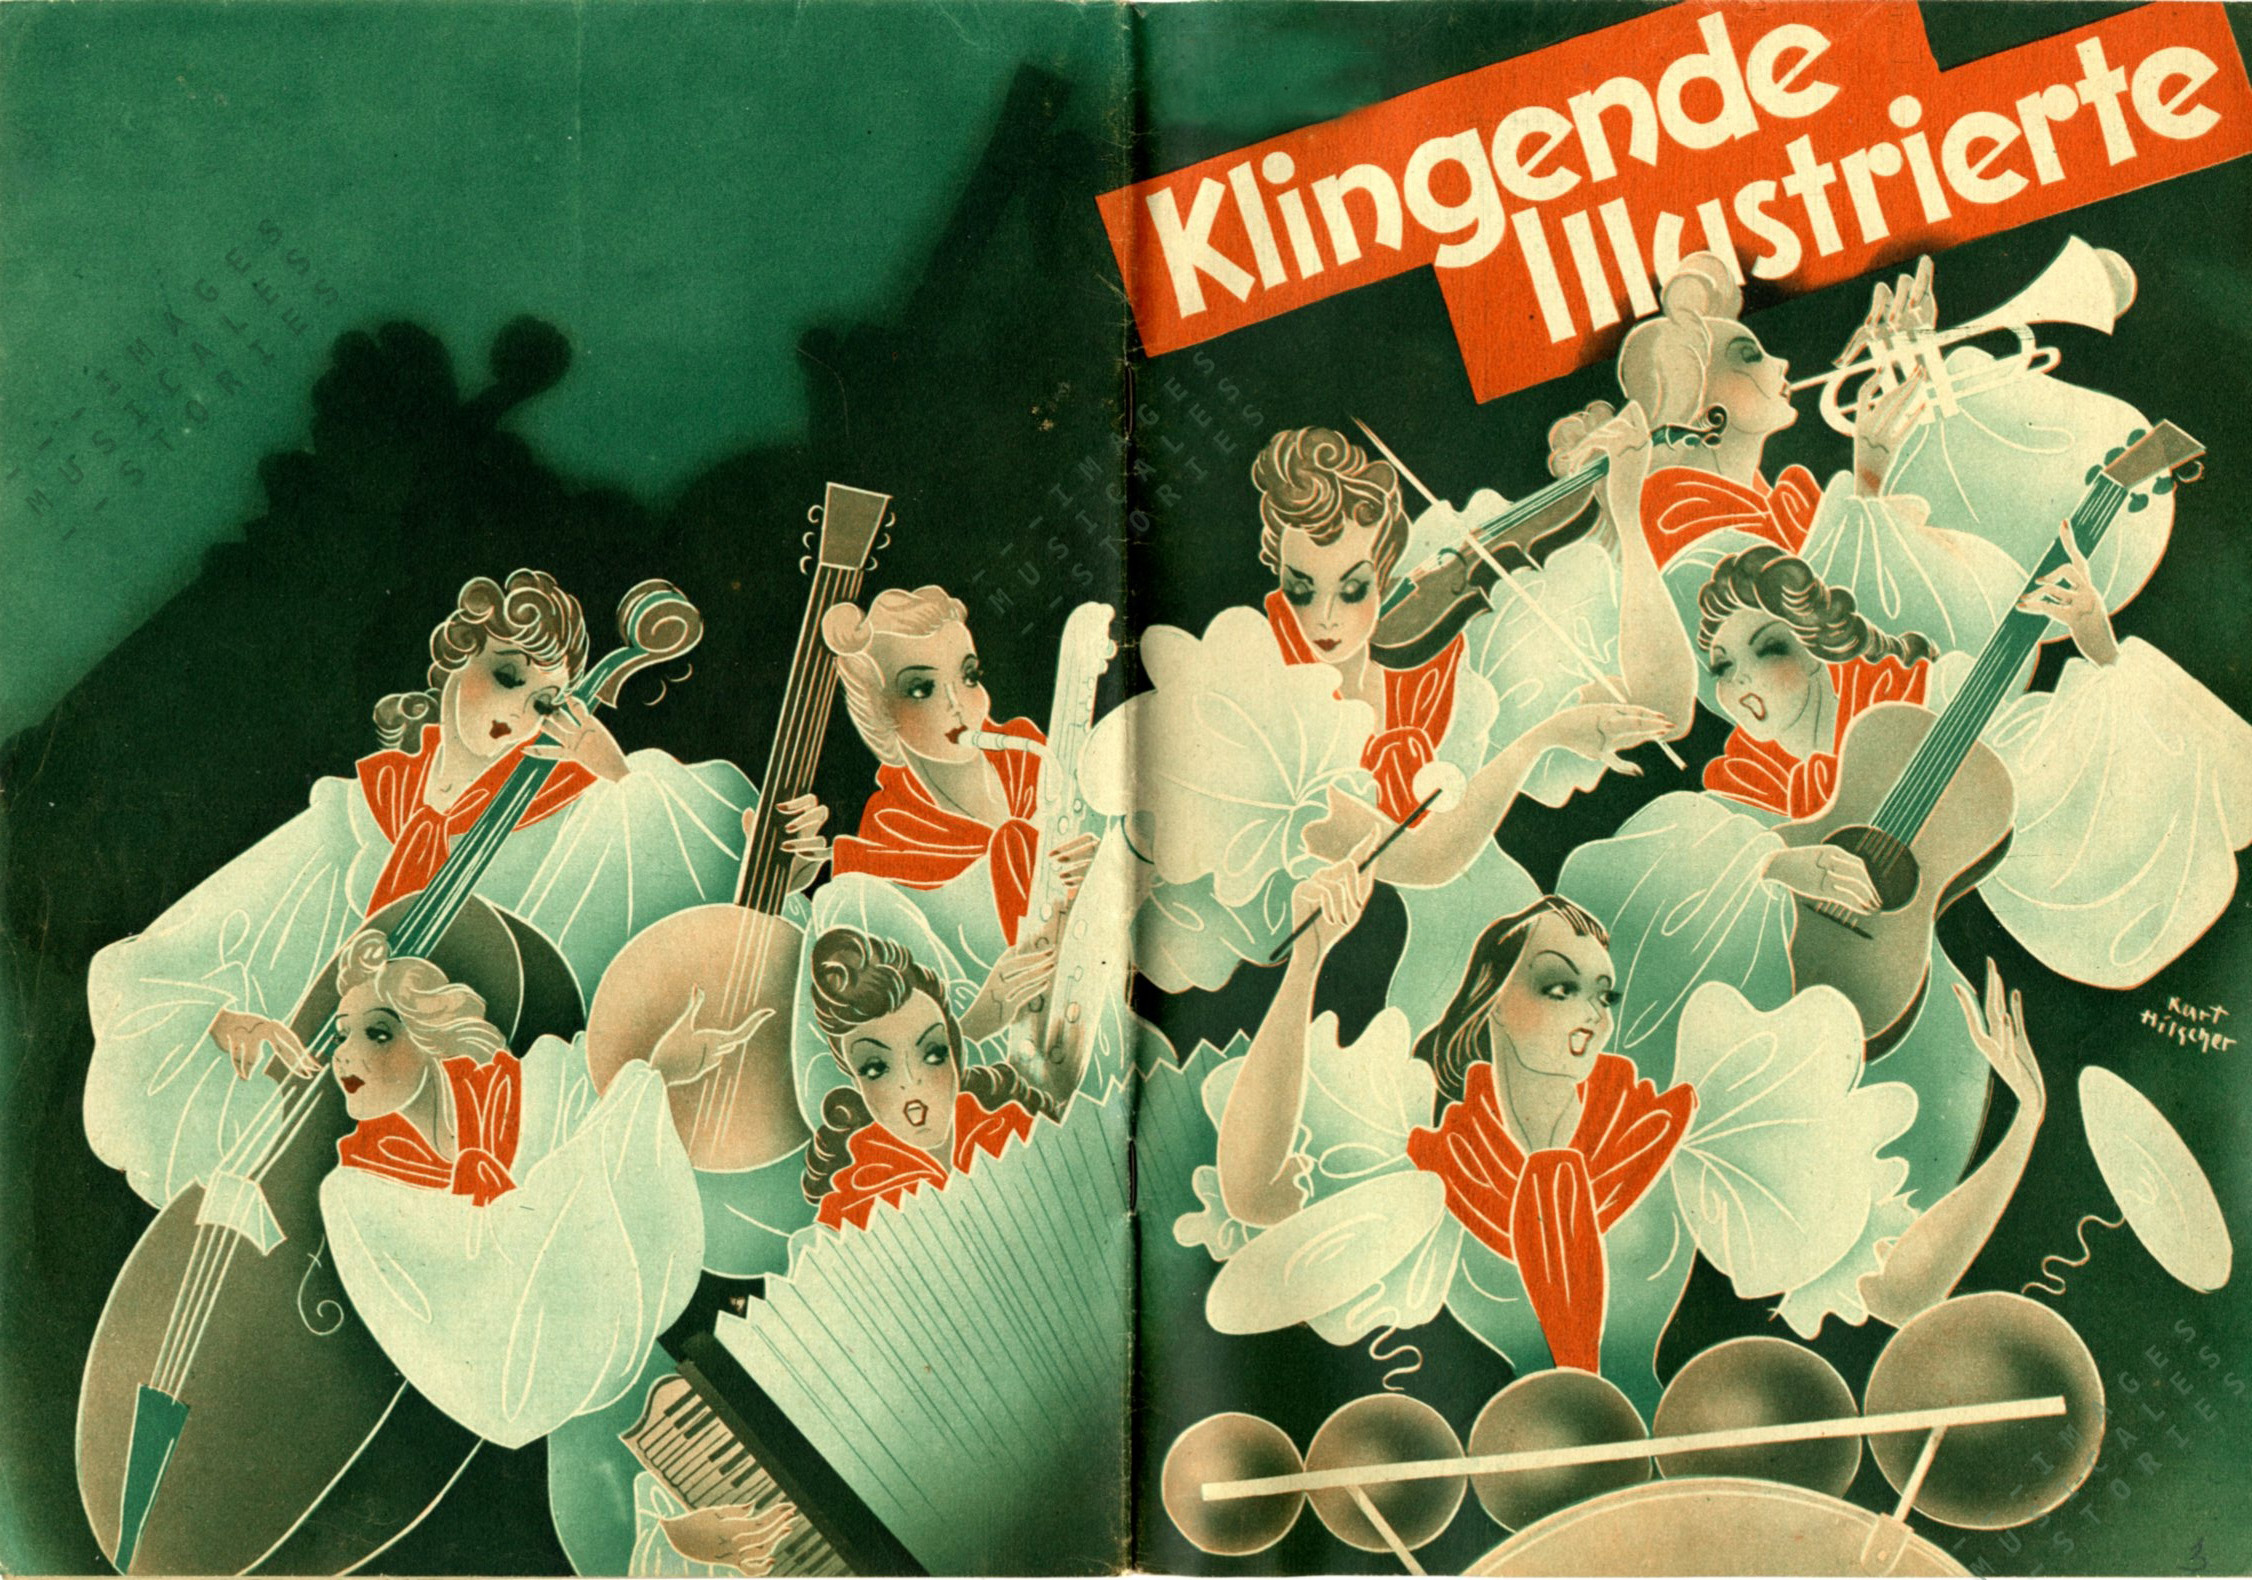 'Klingende Illustrierde', music by various composers (Curtius, Berlin, 1943, illustrated by Kurt Hilscher) Click image to enlarge